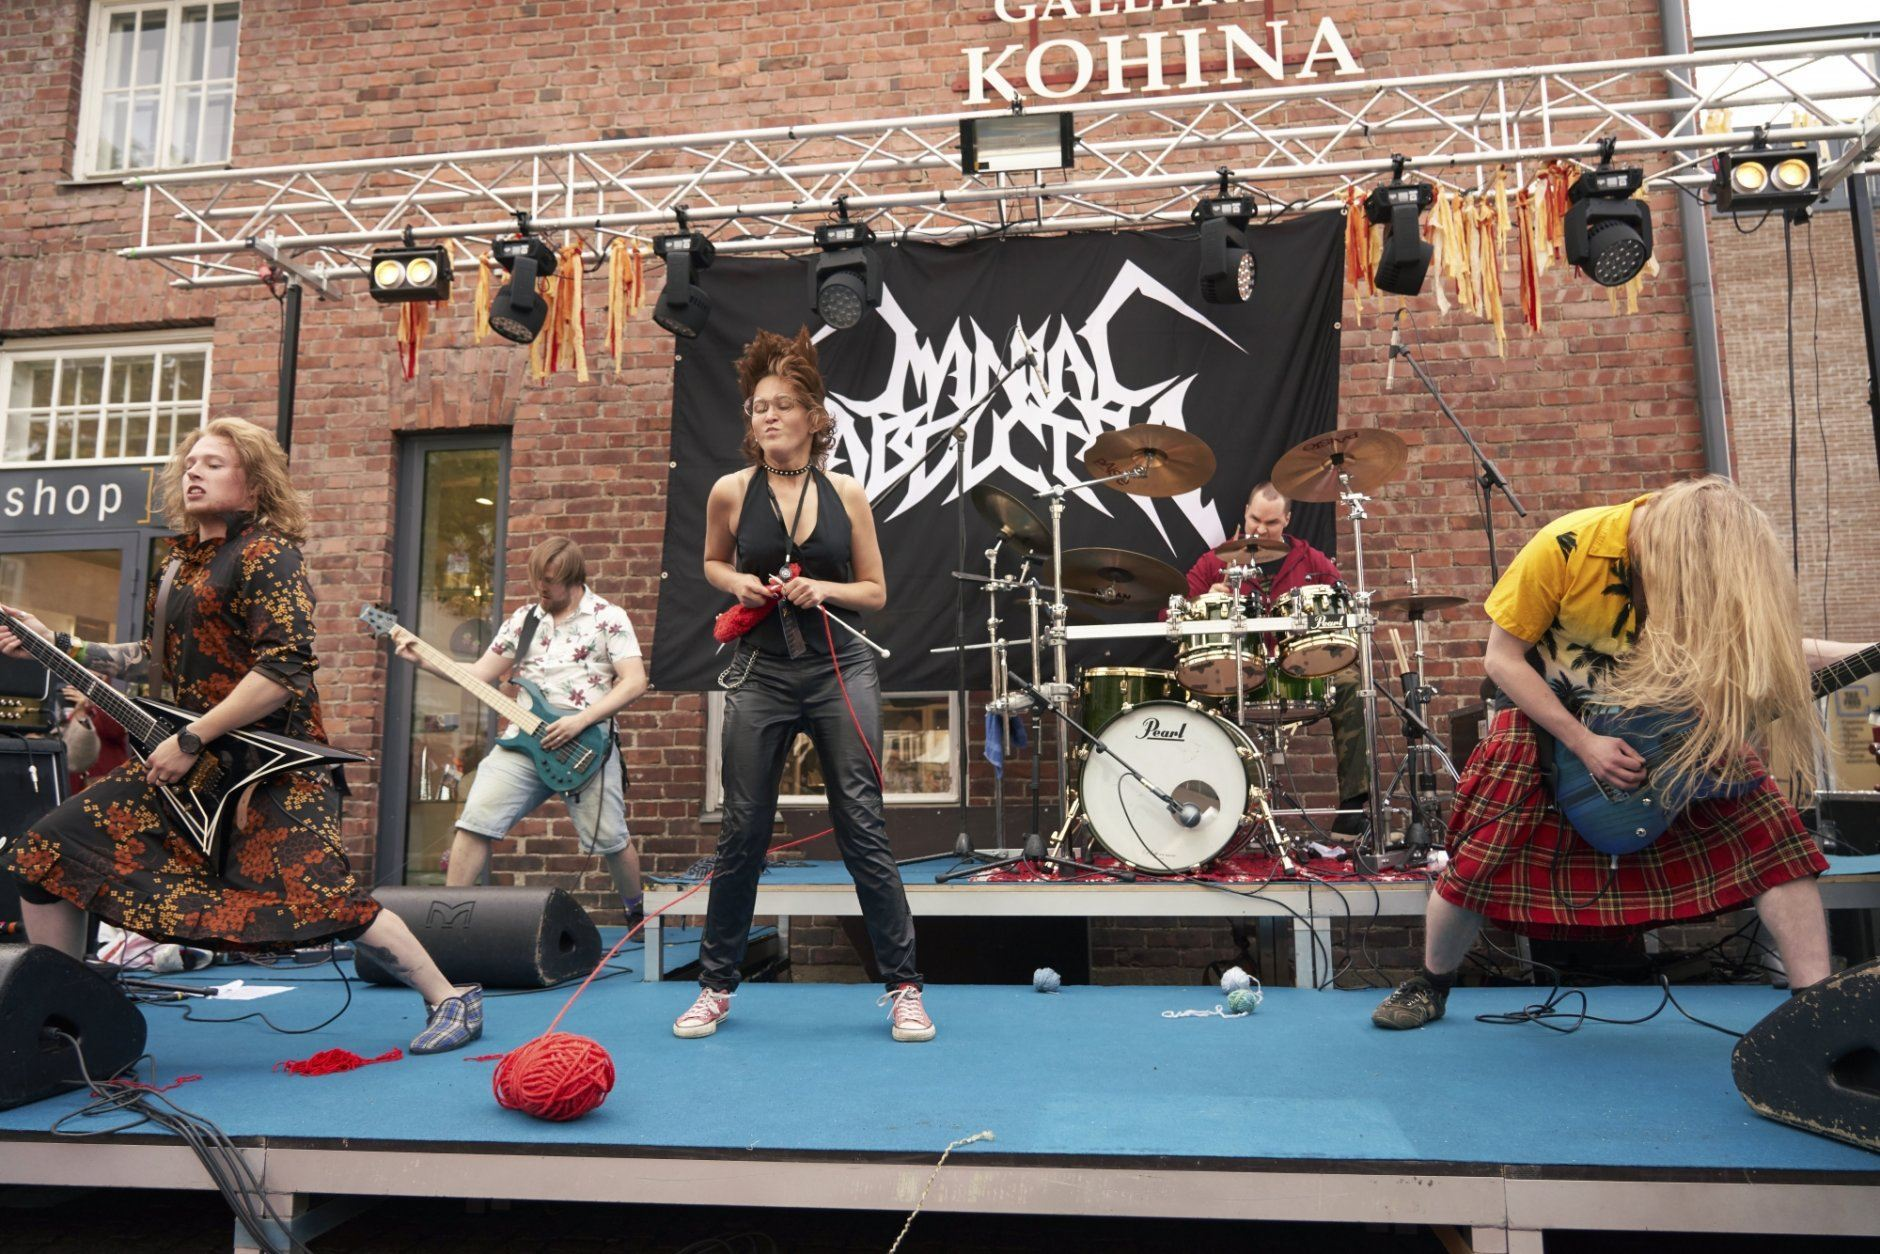 """Armed with needles and a yarn of wool, Natalia from Russia competes on stage in the heavy metal knitting world championship, Thursday, Jul. 11, 2019 in Joensuu, Finland. With stage names such as 'Woolfumes,' 'Bunny Bandit' and '9"""" Needles,' the goal was quite simple: to showcase their knitting skills whilst dancing to heavy metal music in the most outlandish way possible. (AP Photo/David Keyton)"""